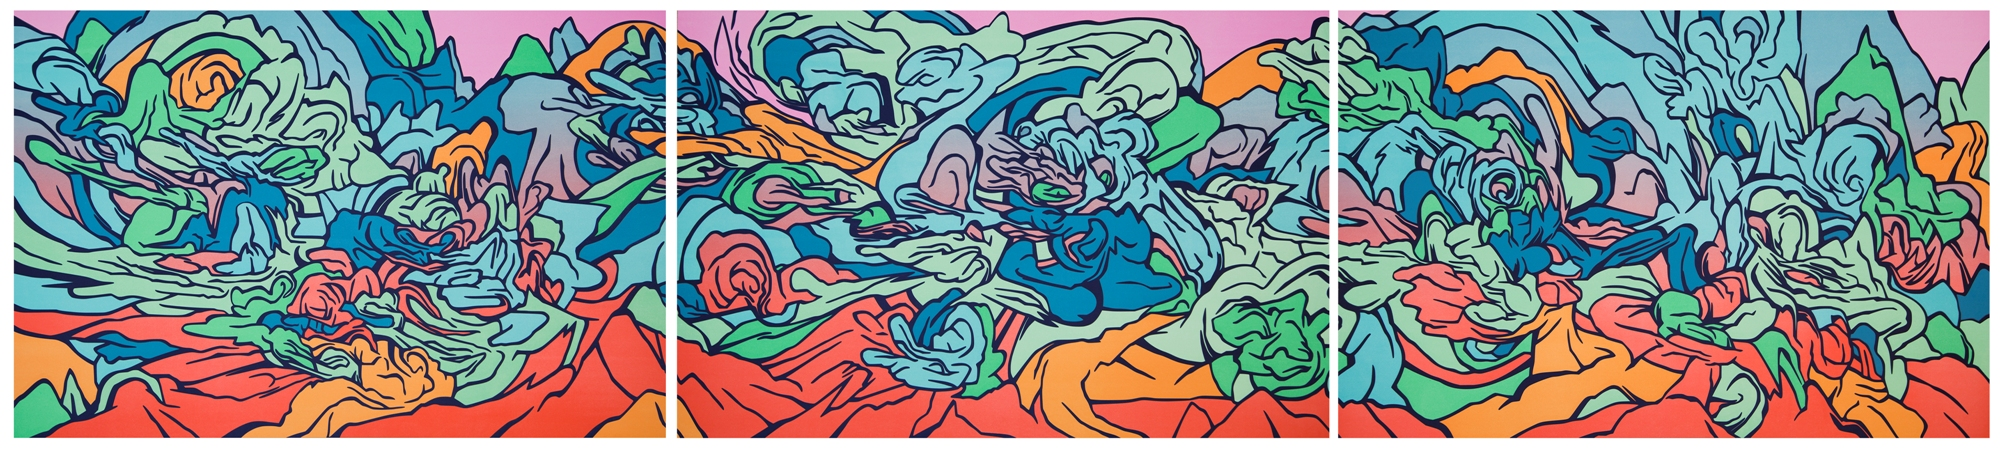 """After Genji  , 2017, Edition of 16 - Lithograph Triptych - 27 1/2"""" x 39 1/4"""" (70 cm x 100 cm) each"""